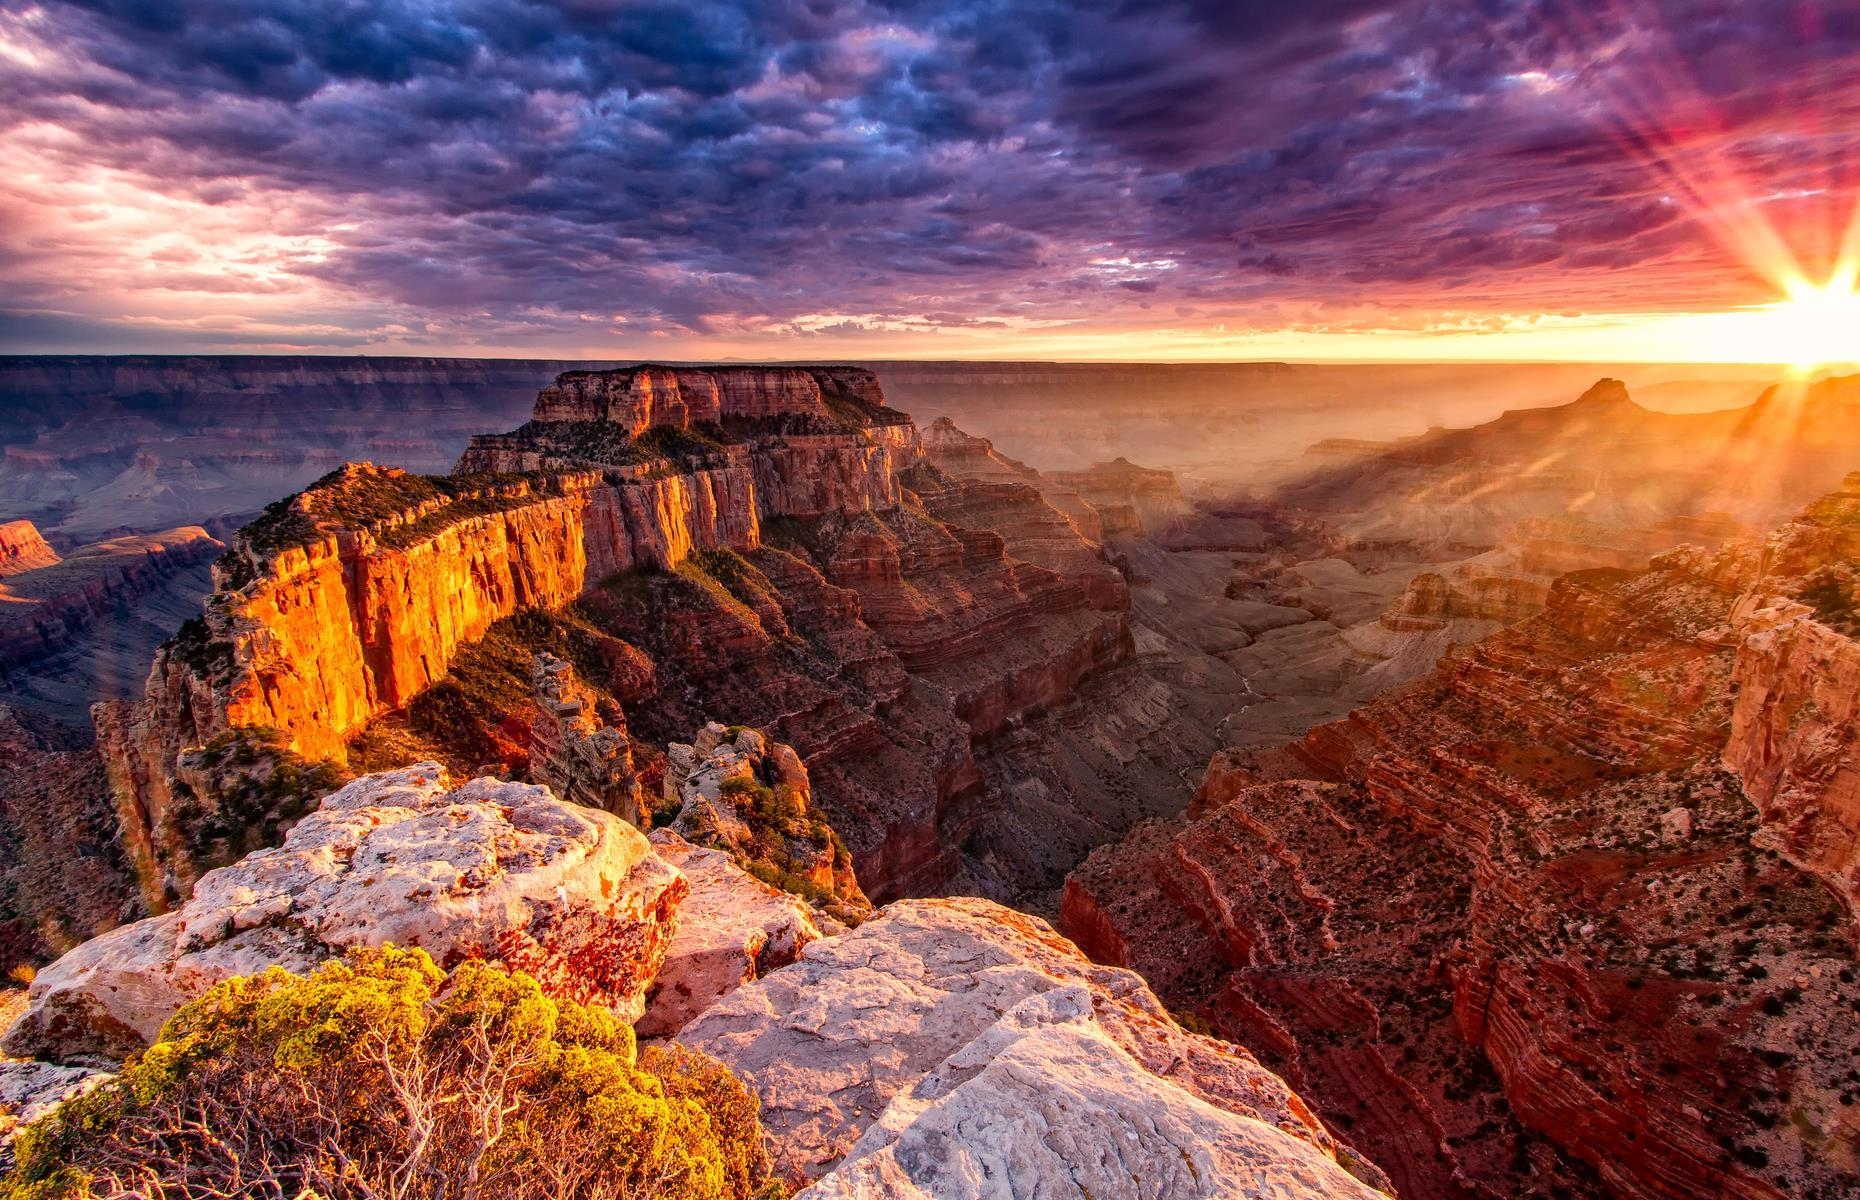 Slide 27 of 51: There's a good reason thata staggering 6.38 million people visited this cavernous multicolored canyon in Arizona in 2018. The gaping chasm is one of nature's truly epic sights. Carved out by the Colorado River over millions of years, the Grand Canyon measures 277 miles (446km) in length and reaches widths of up to 18 miles (29km) wide. With its cavernous size, the rust-colored canyon boasts spectacular views across the desert landscape. The South Rim is best known for its scenic lookouts. Check out these stunning images of the world's most incredible canyons.